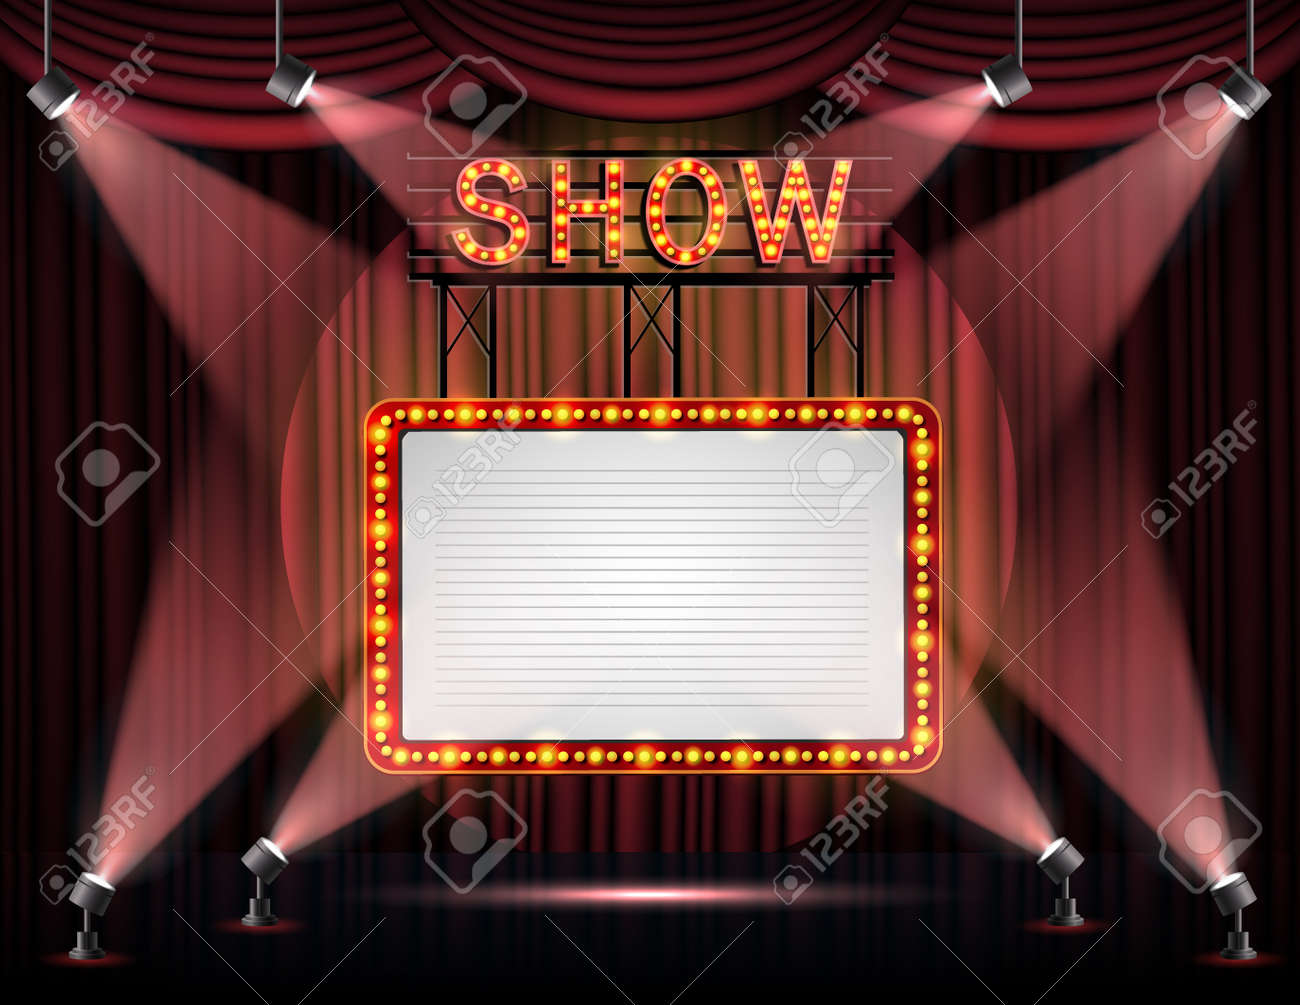 Showtime banner with curtain illuminated by spotlights - 168266866